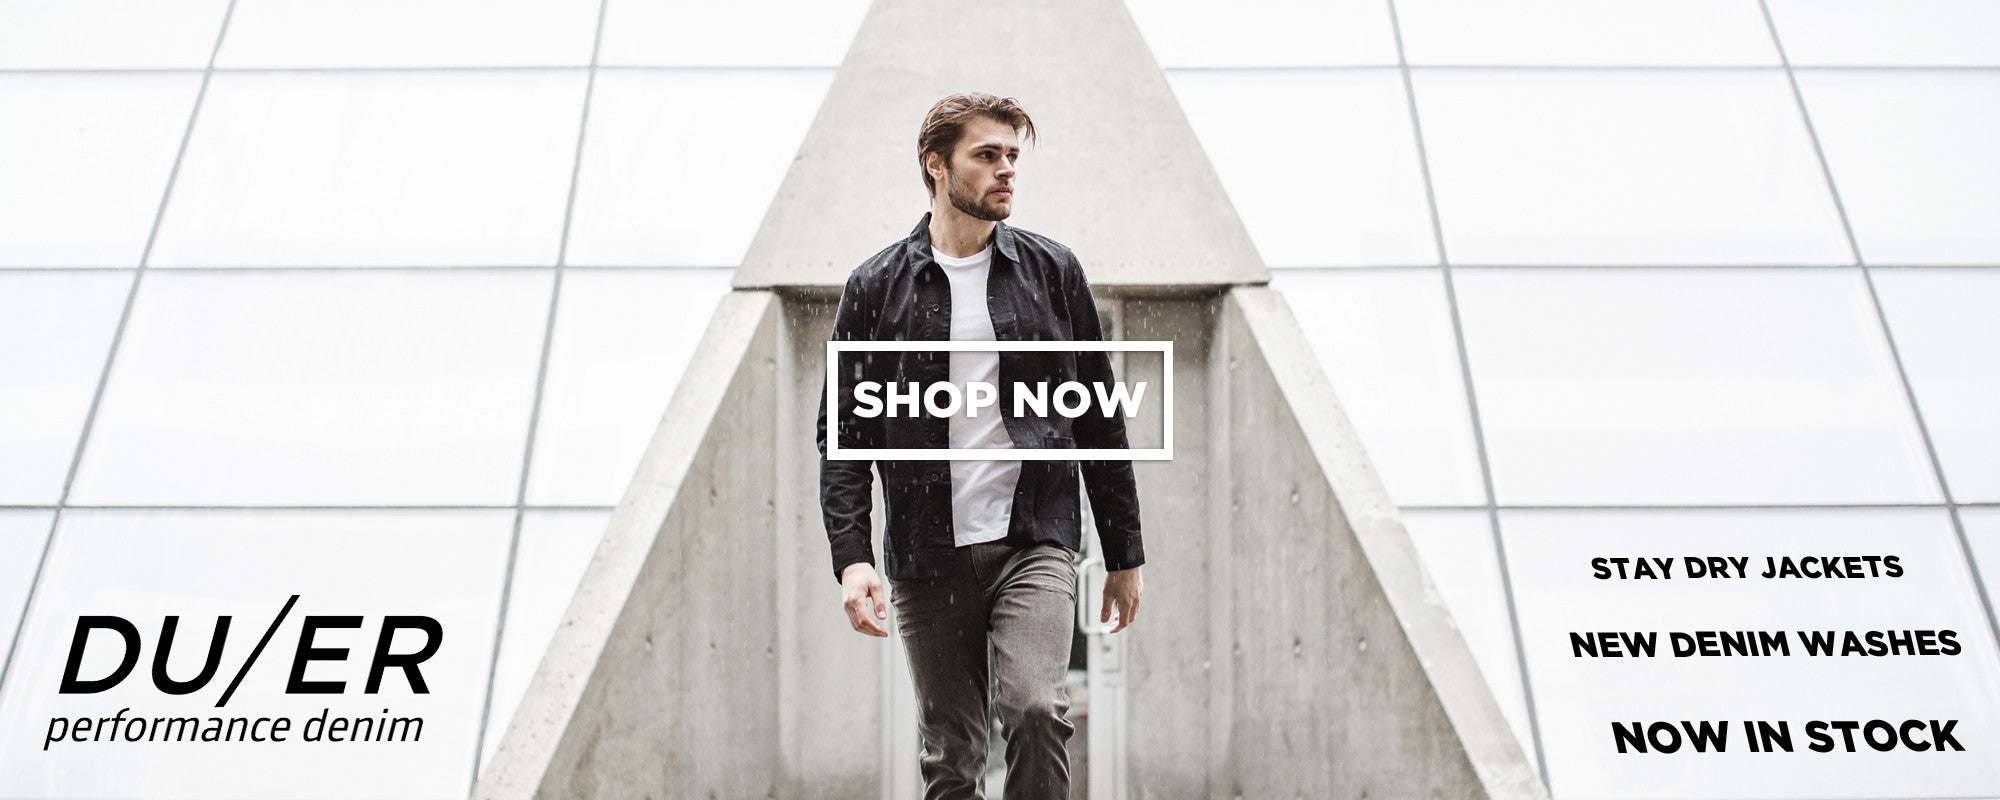 Looking up Frugal Mens Fashion on Reddit?  Looking for a great deal?  All our Summer Apparel is now 50-70% off!